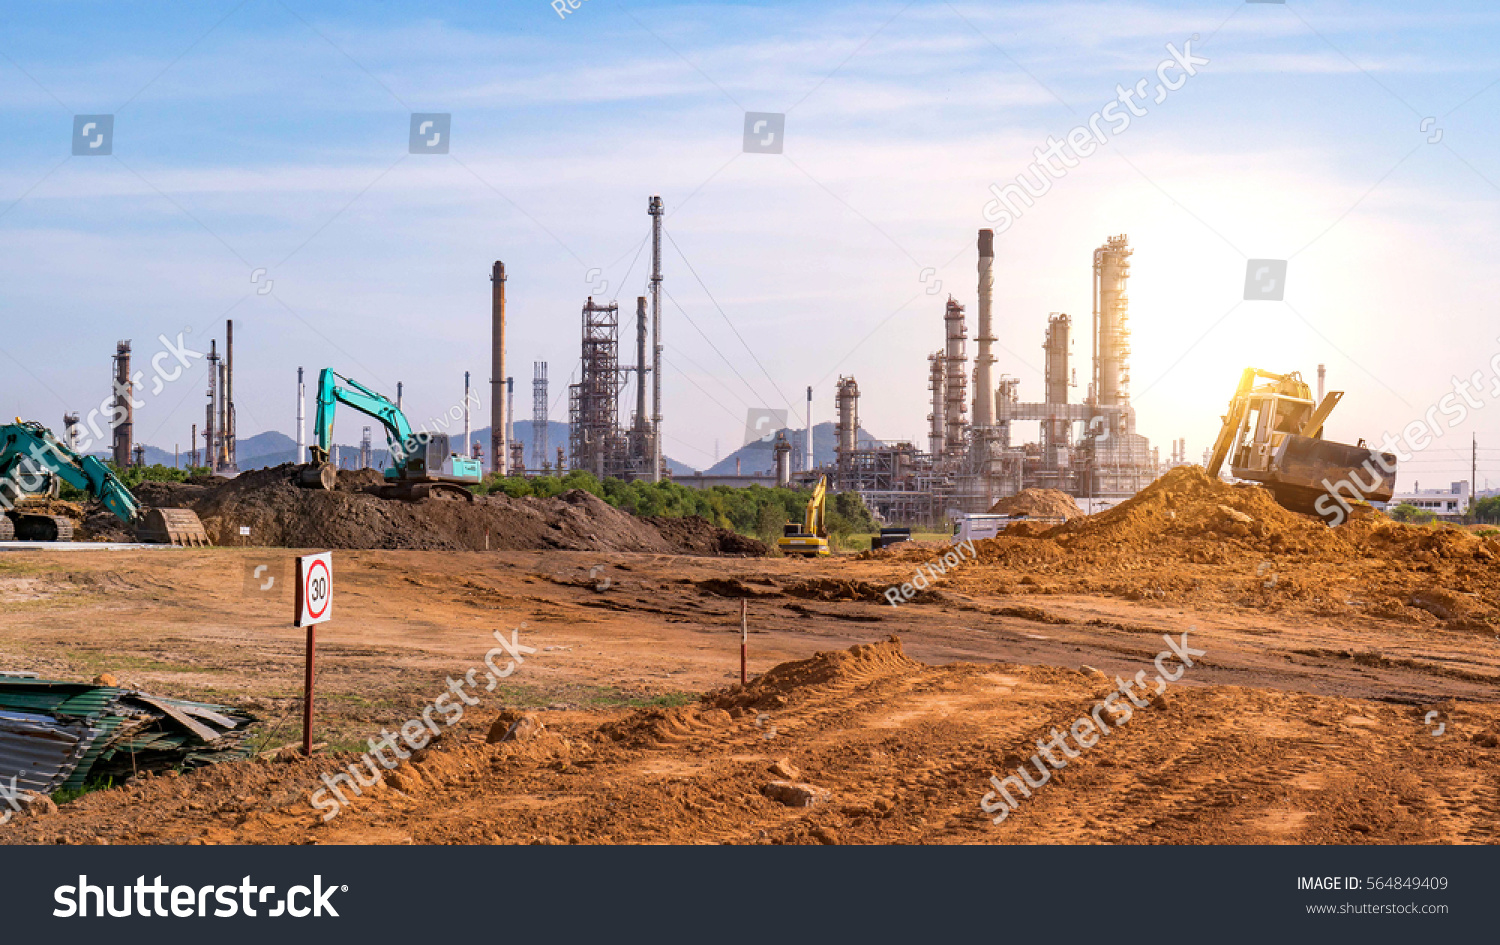 Oil Gas Refinery Construction Site Tractors Stock Photo (Edit Now